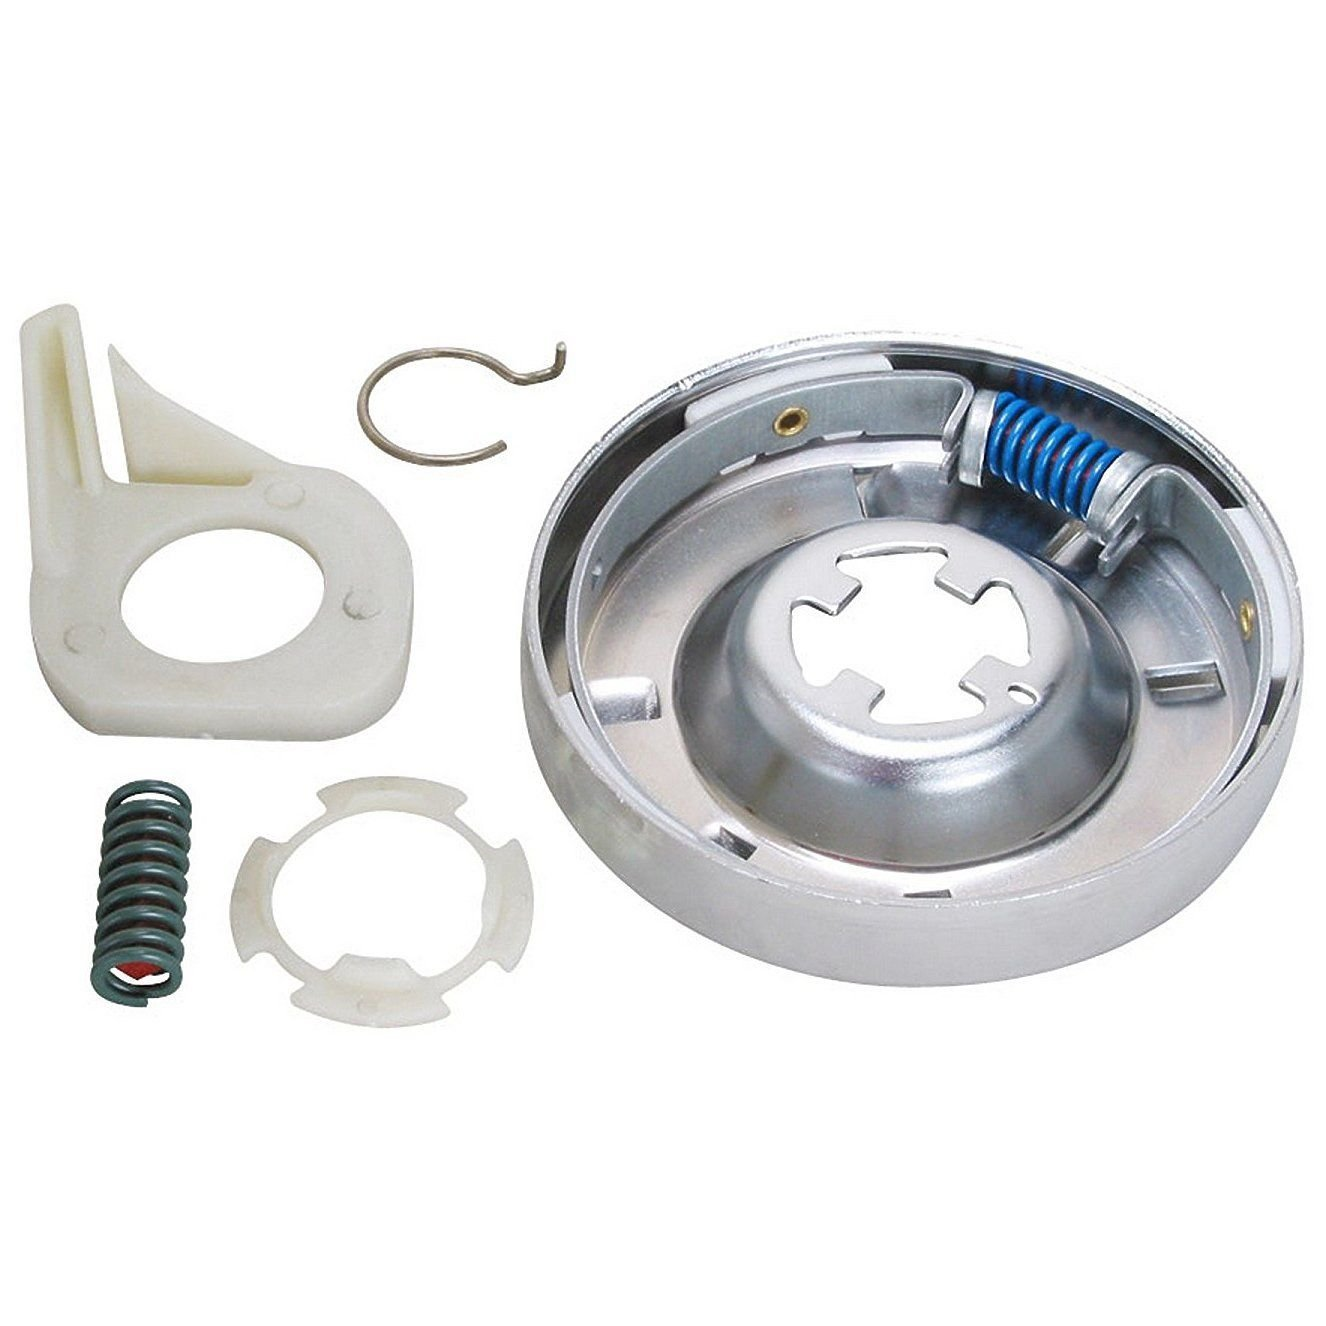 NEW PART 285761 2670 FITS WHIRLPOOL KENMORE WASHER COMPLETE CLUTCH ASSEMBLY KIT